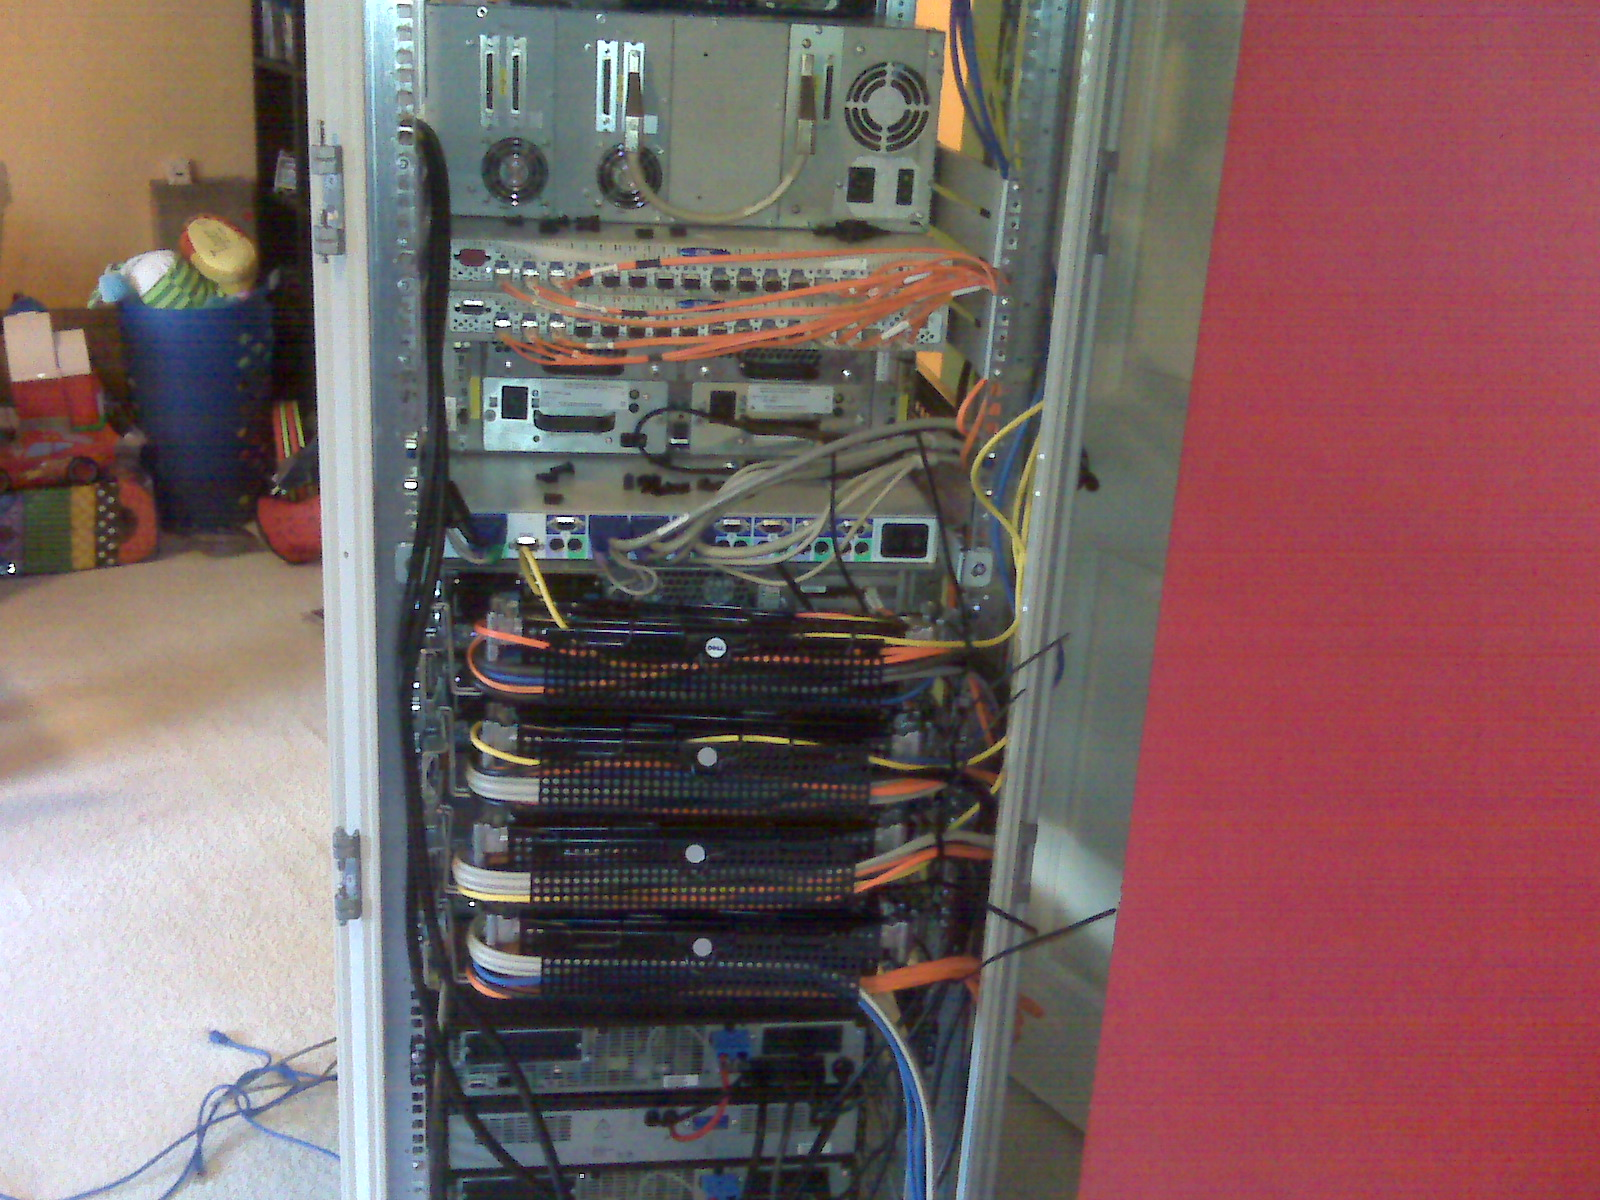 You can see that I paid attention to cable management, though it's still not as nice as I would have liked.